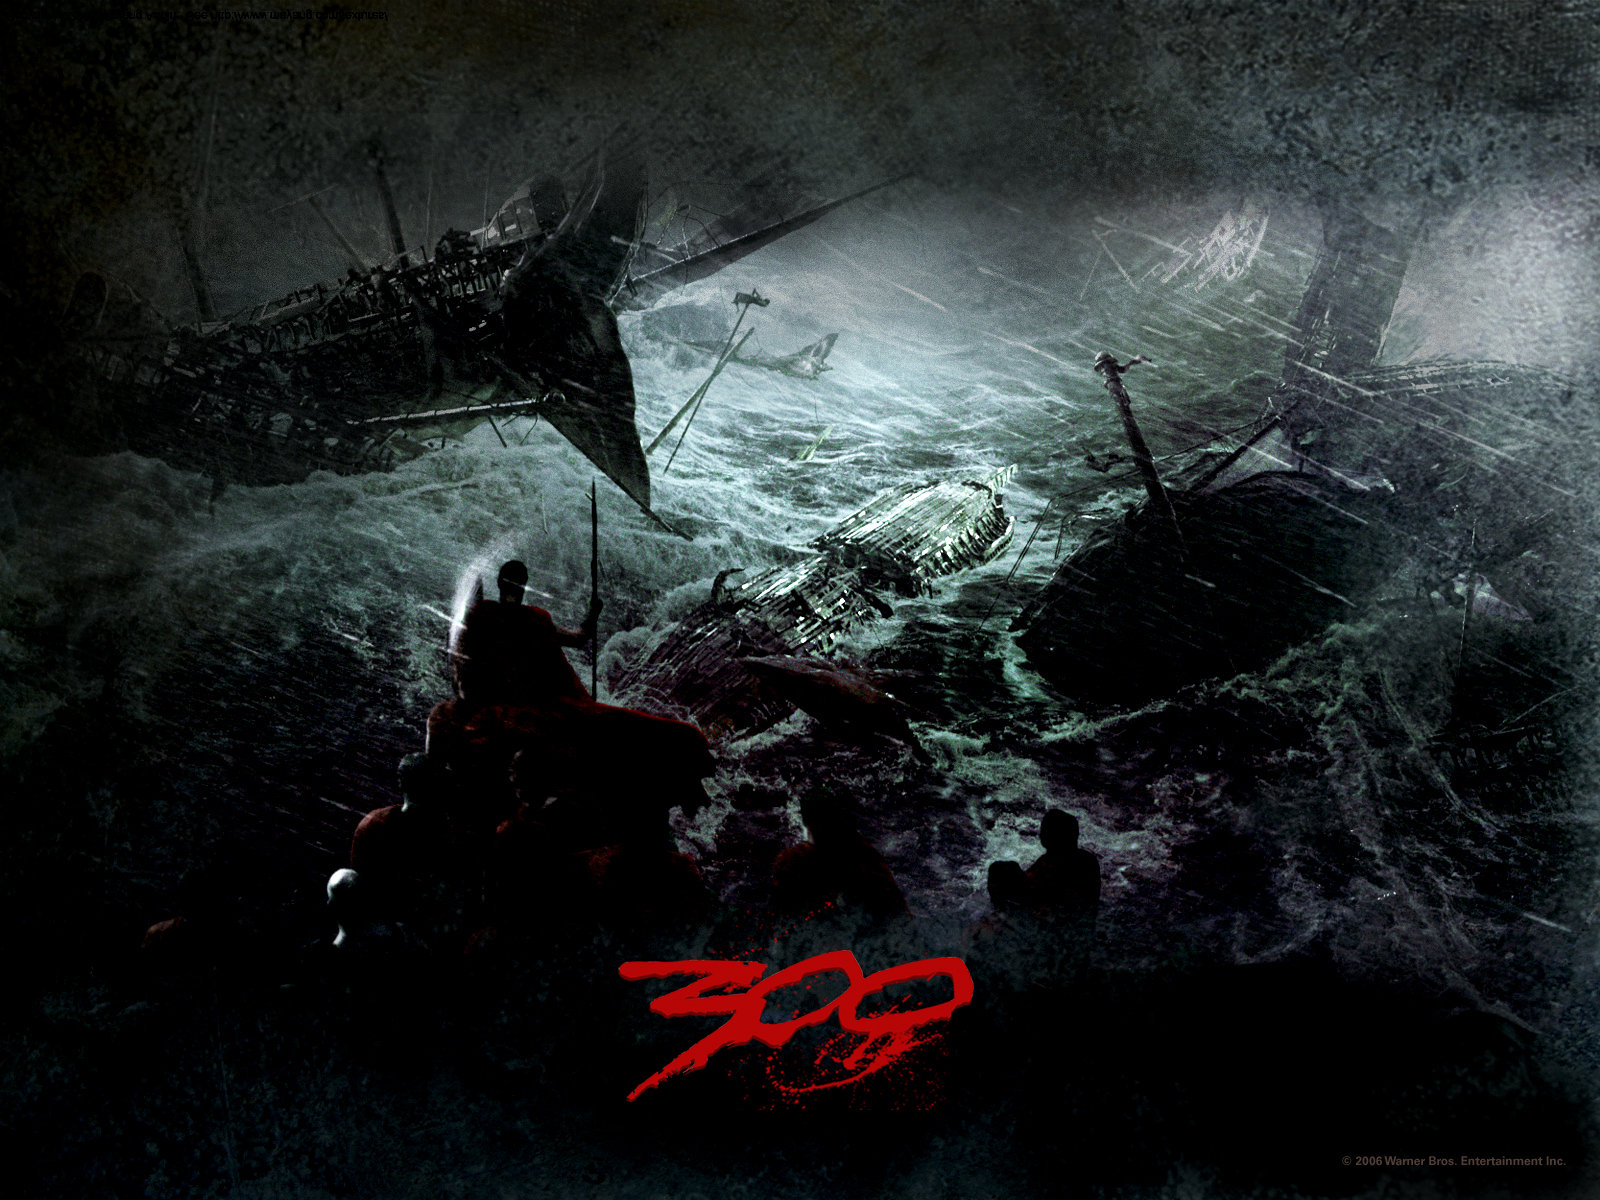 300 the movie wallpaper free hd backgrounds images pictures